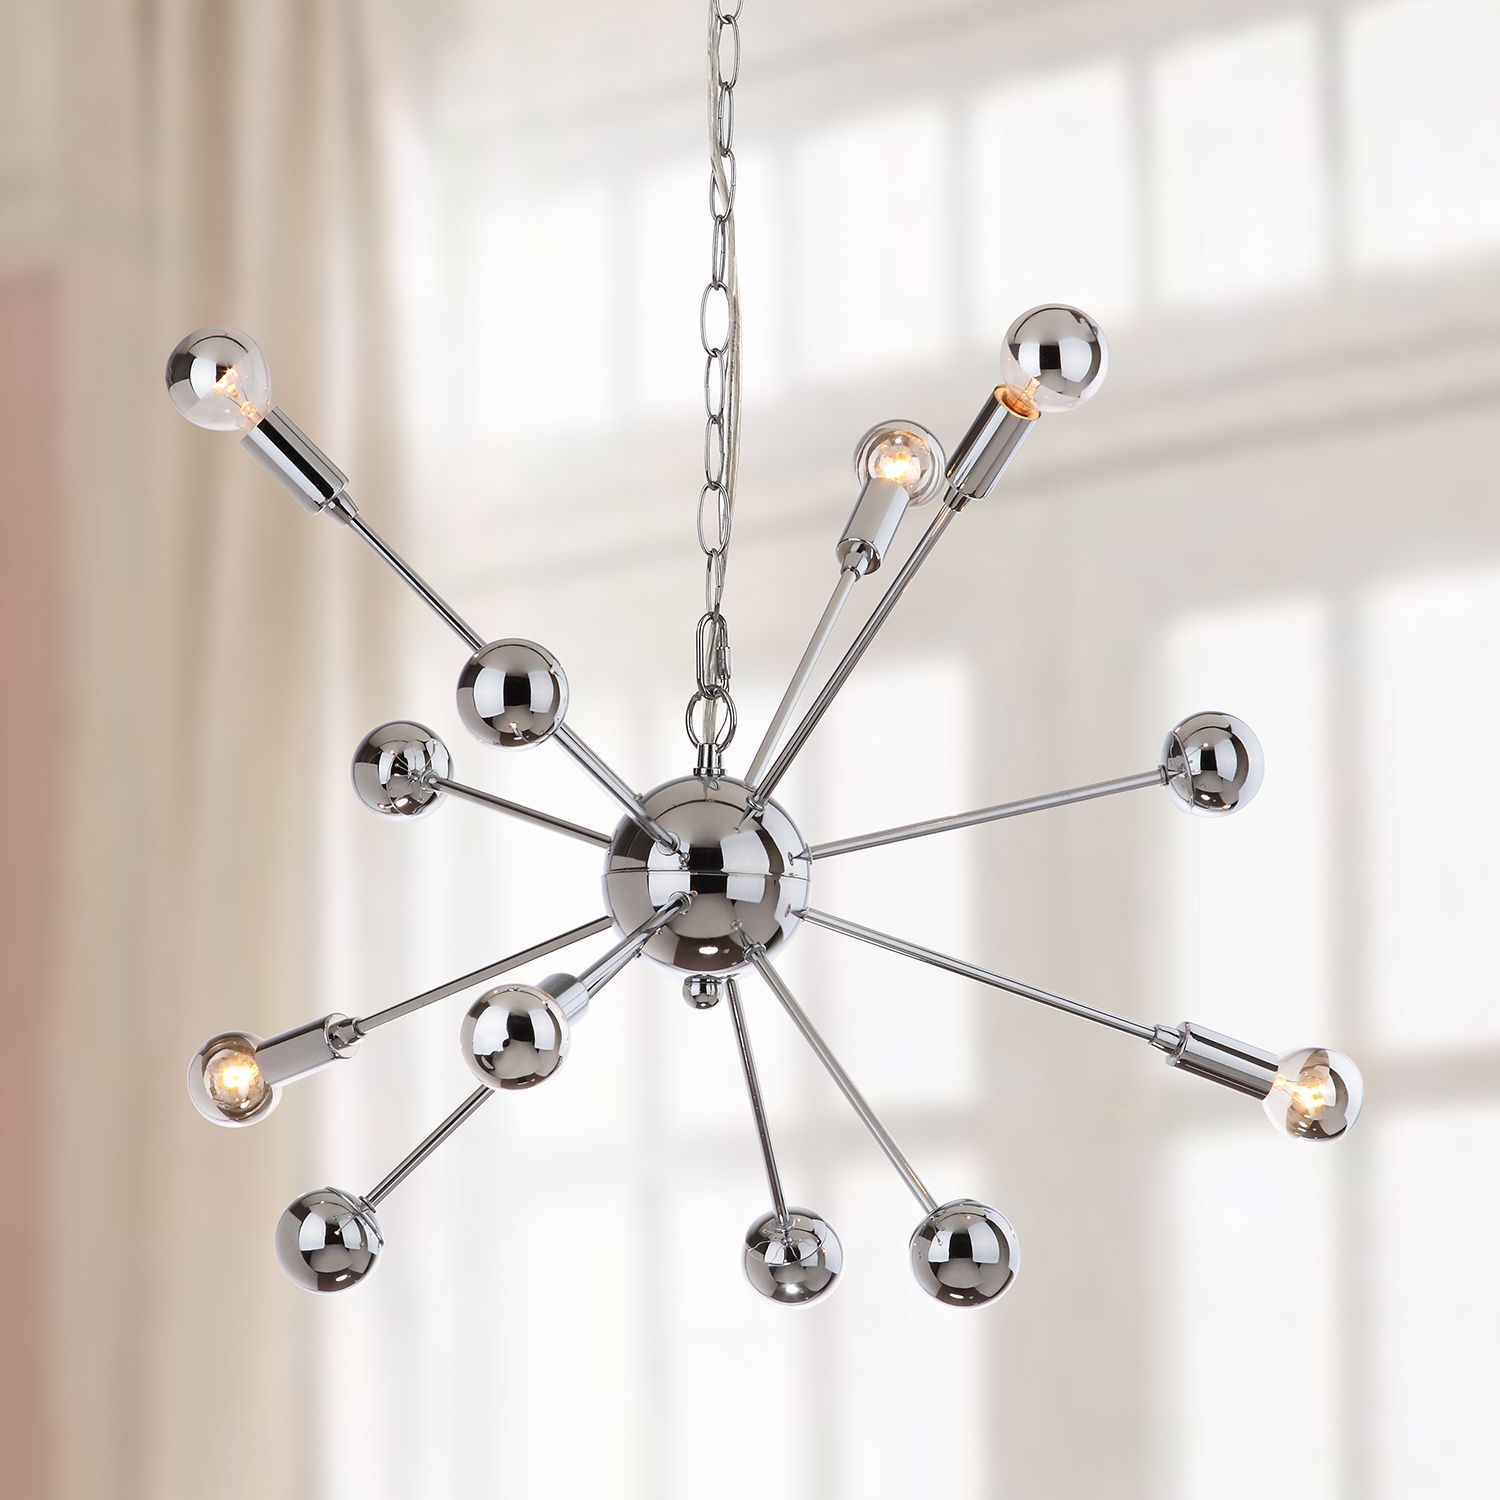 6 Light Starburst Sputnik Pendant Light | Products For Eladia 6 Light Sputnik Chandeliers (Gallery 25 of 30)